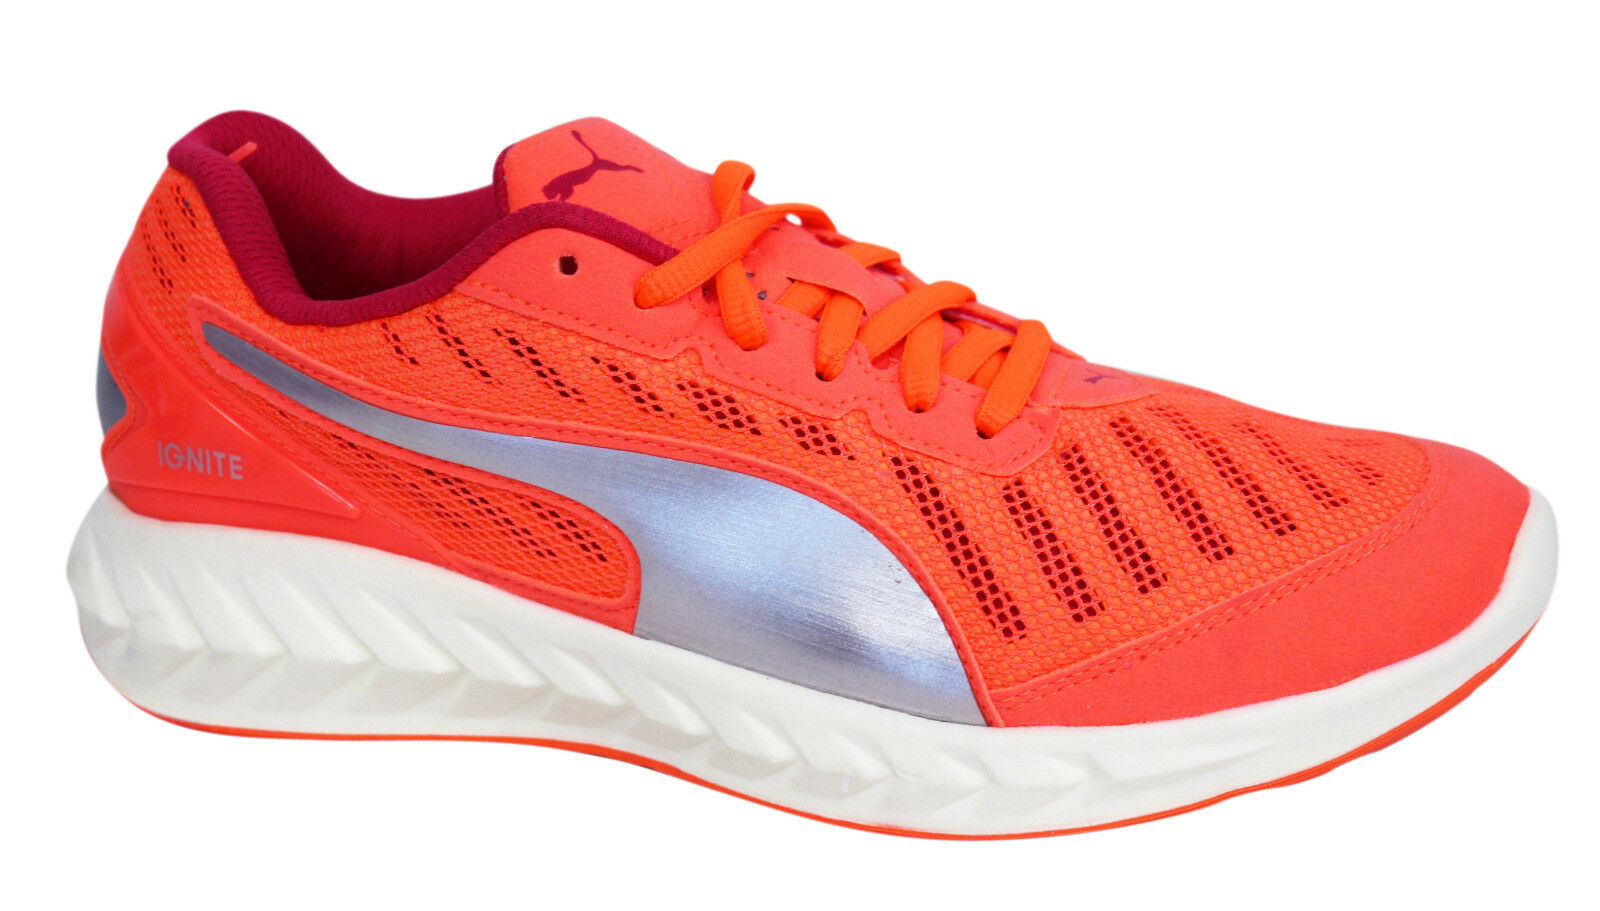 Puma Ignite Ultimate Womens Trainers Running Shoes Sports Peach 188606 01 M10